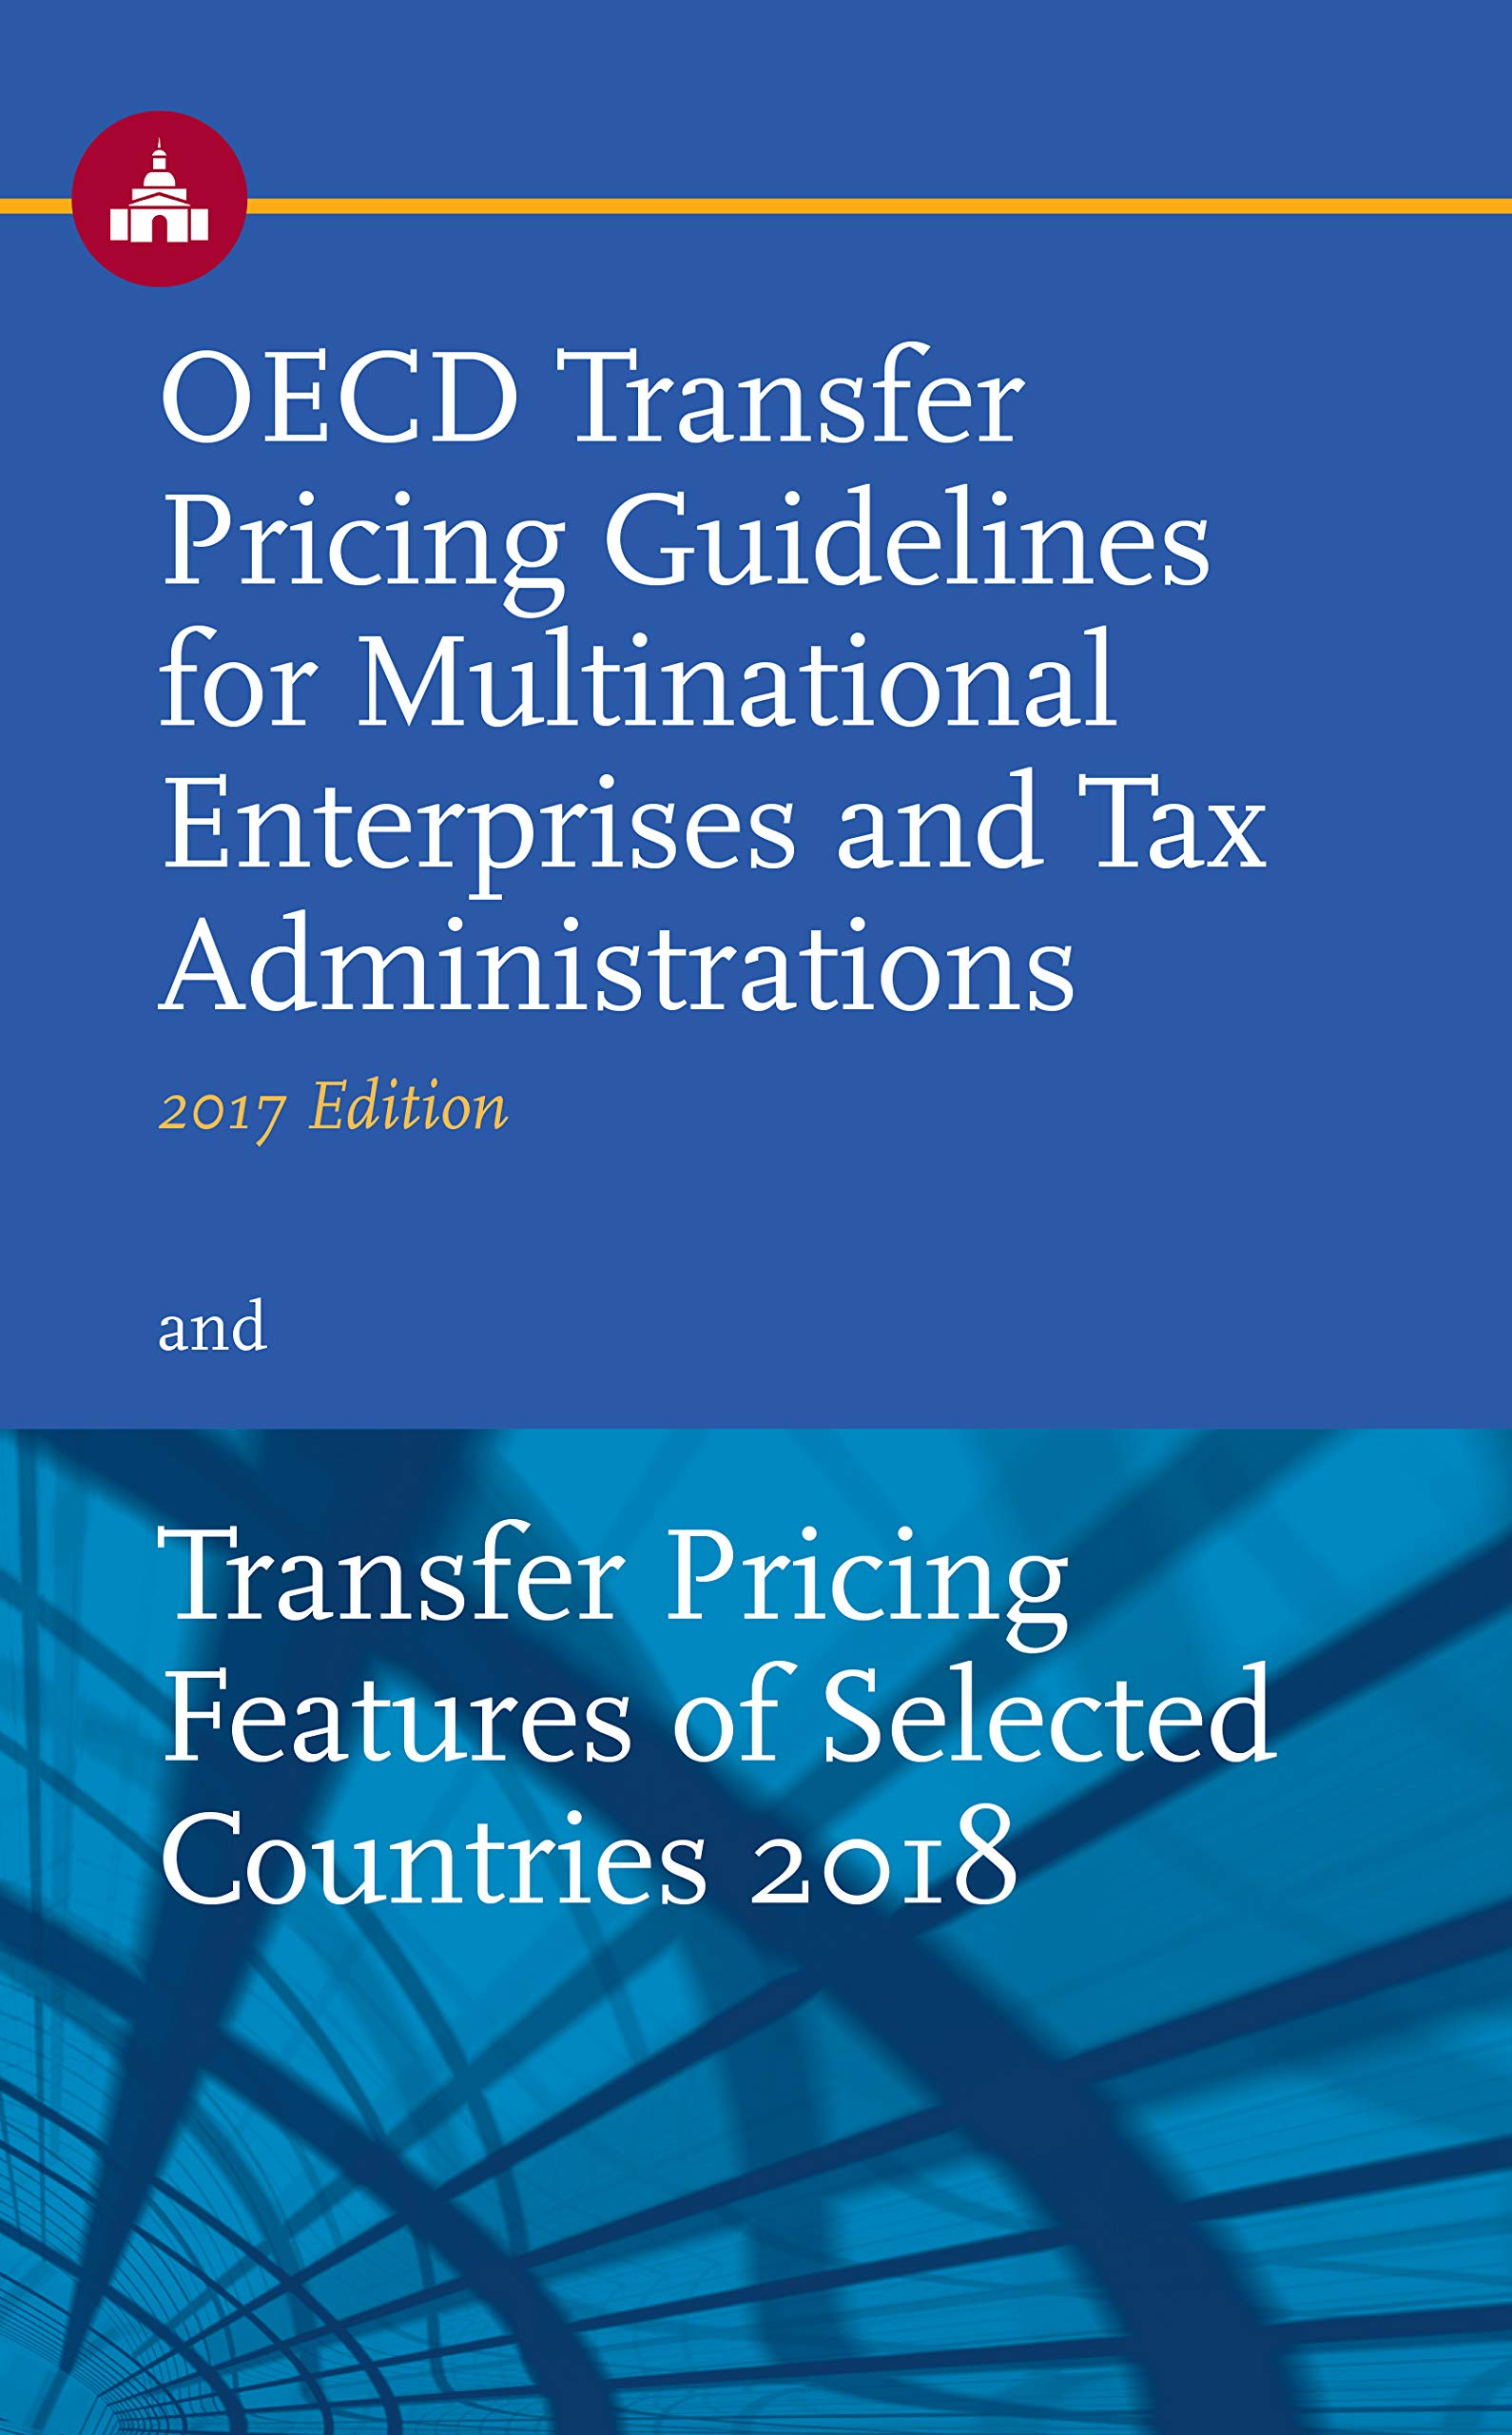 OECD Transfer Pricing Guidelines for Multinational Enterprises and Tax Administrations (2017 Edition) and Transfer Pricing Features of Selected Countries 2018